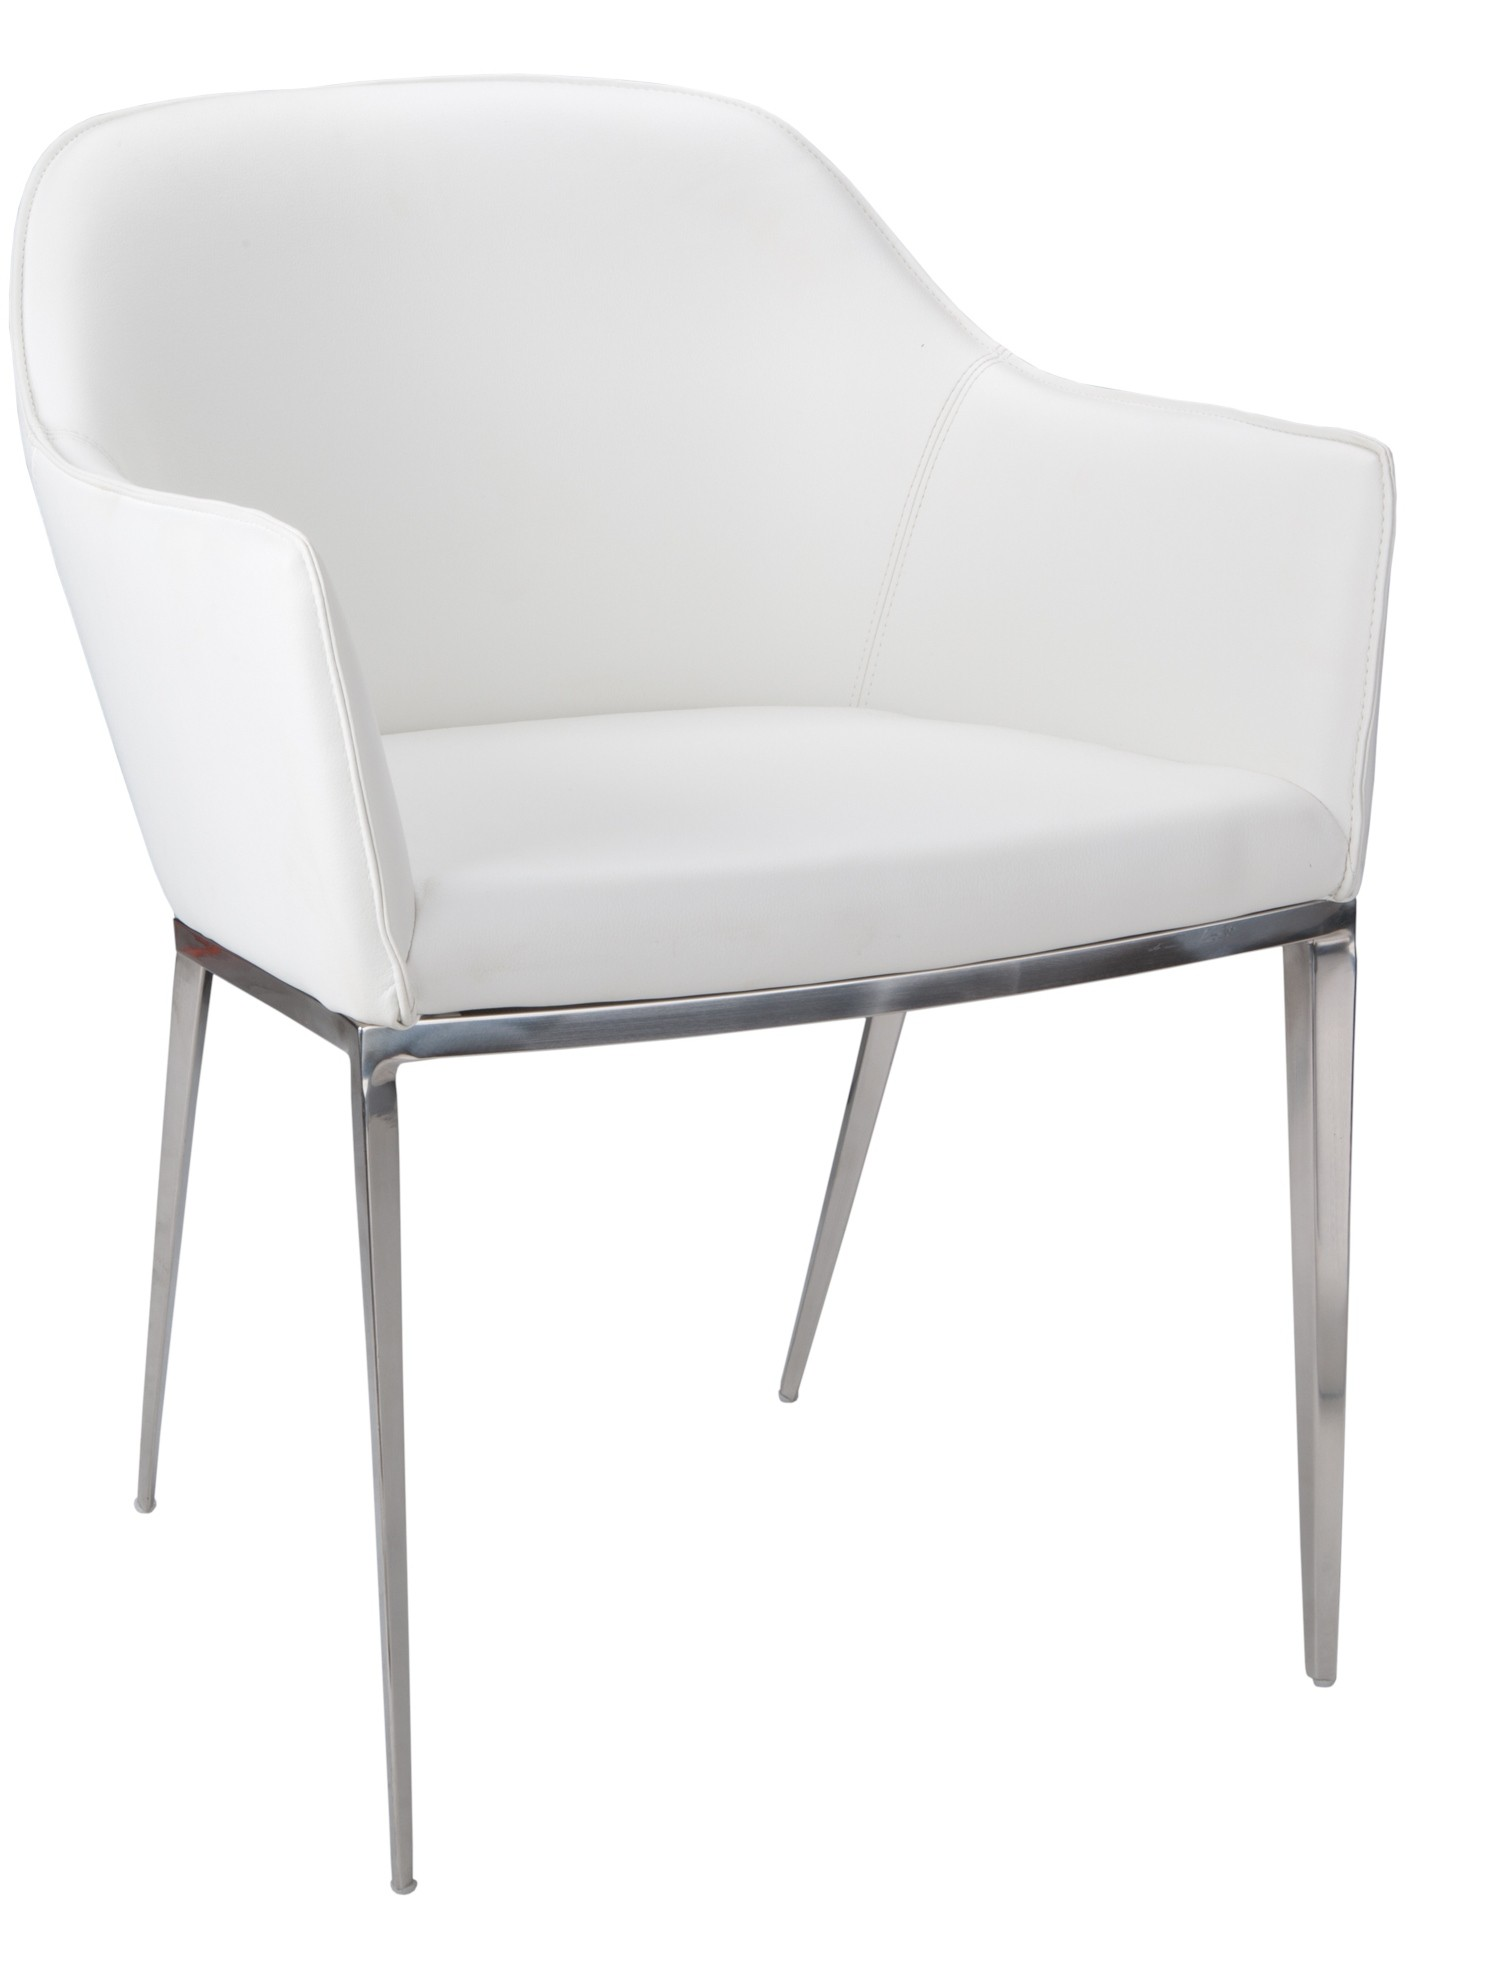 Stanis White Armchair from Sunpan (13026) | Coleman Furniture